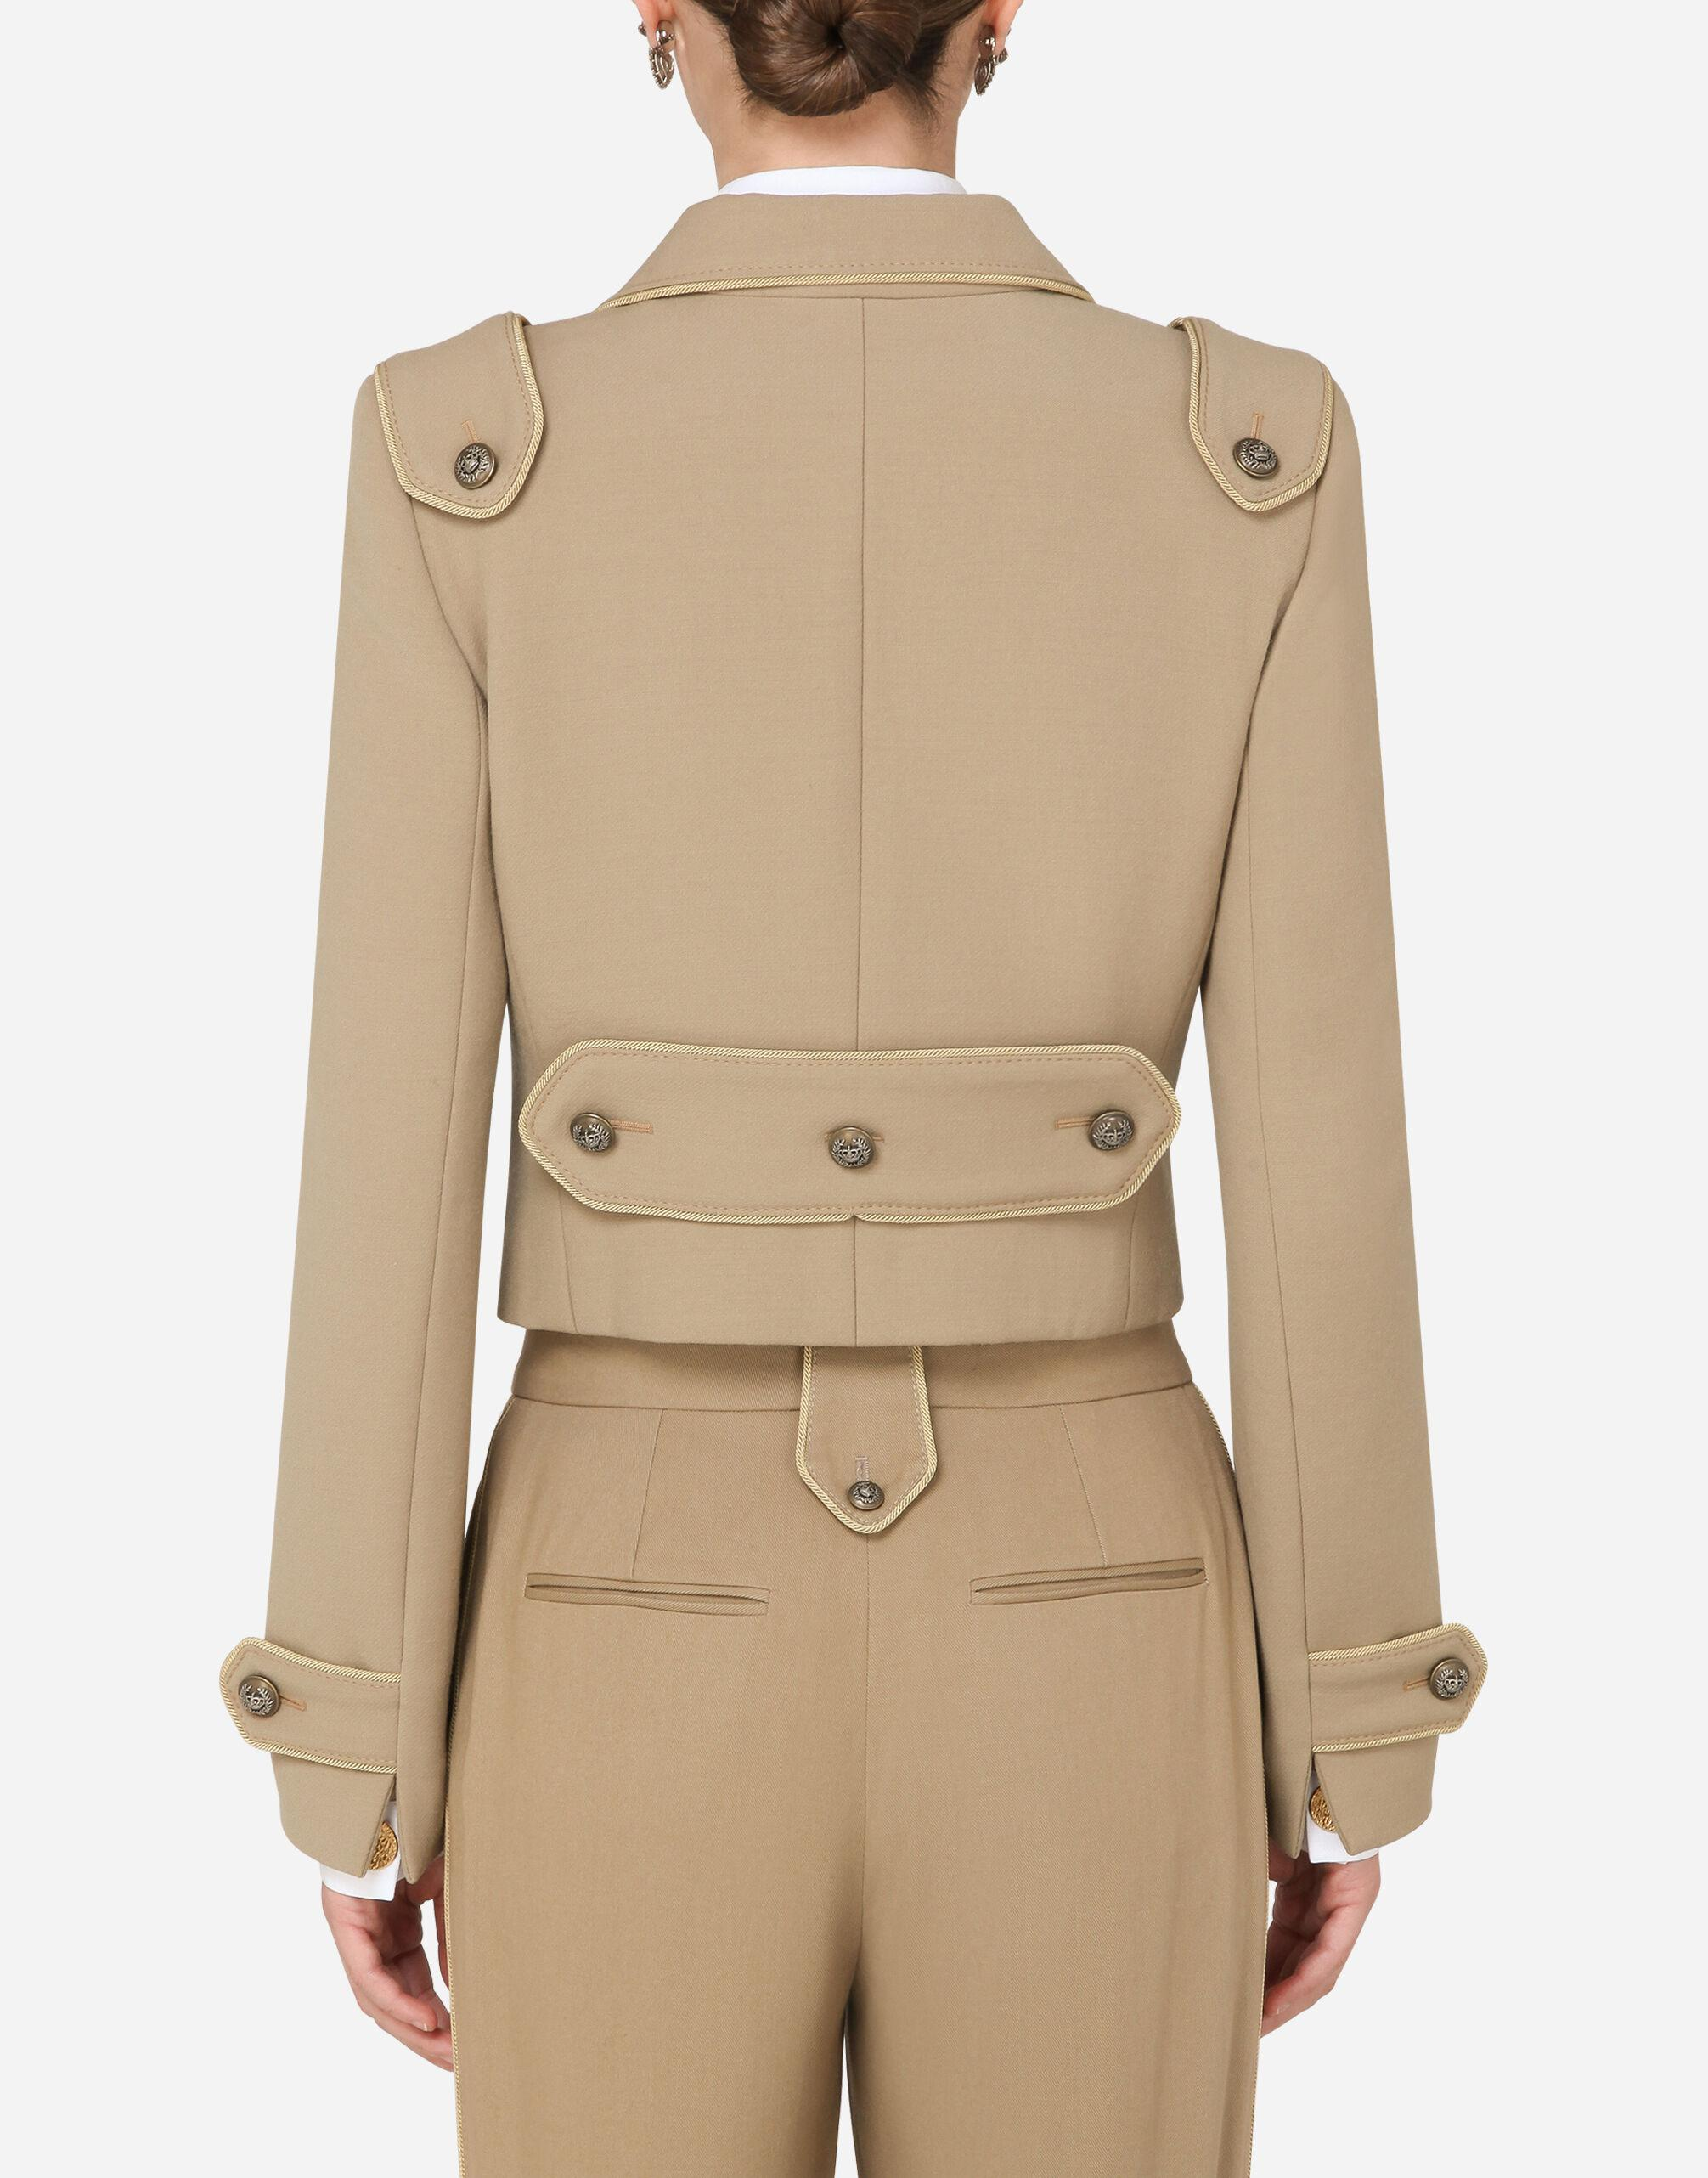 Cropped double-breasted jacket in wool with decorative buttons 1